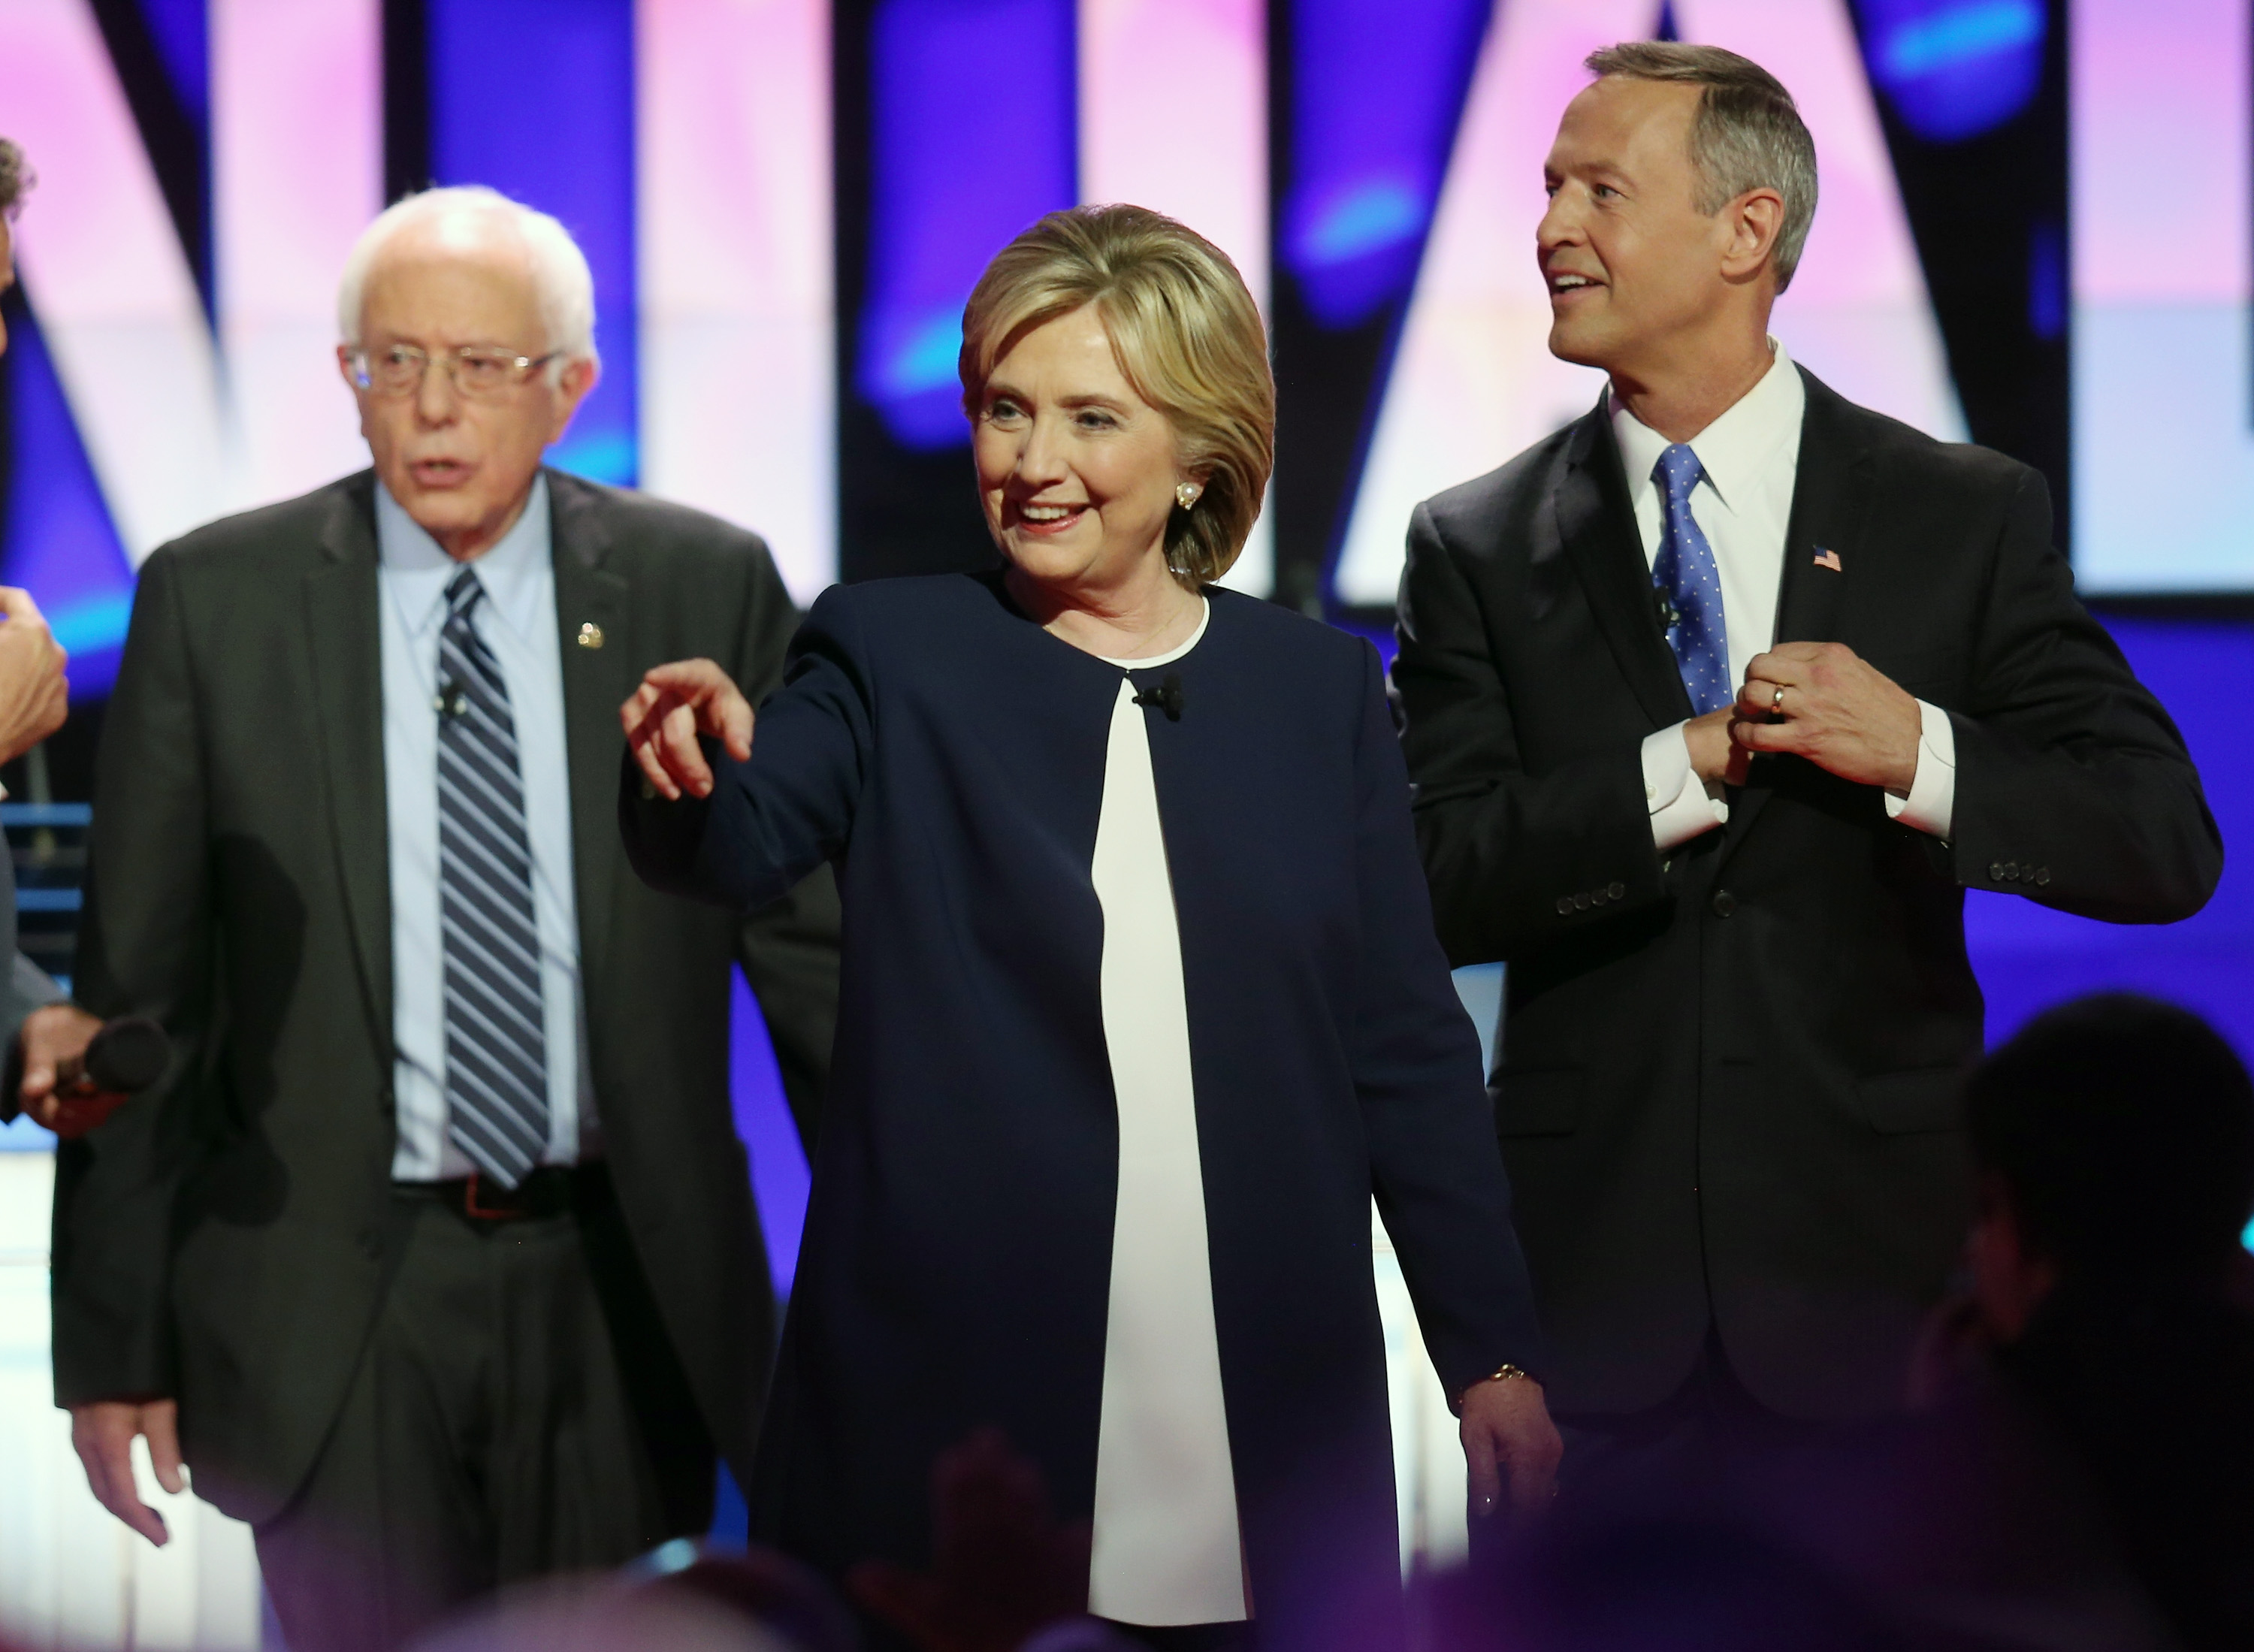 Democratic presidential candidates Sen. Bernie Sanders (I-VT) Hillary Clinton, and Martin O'Malley walk on the stage at the end of a presidential debate sponsored by CNN and Facebook at Wynn Las Vegas on October 13, 2015, in Las Vegas, Nevada.